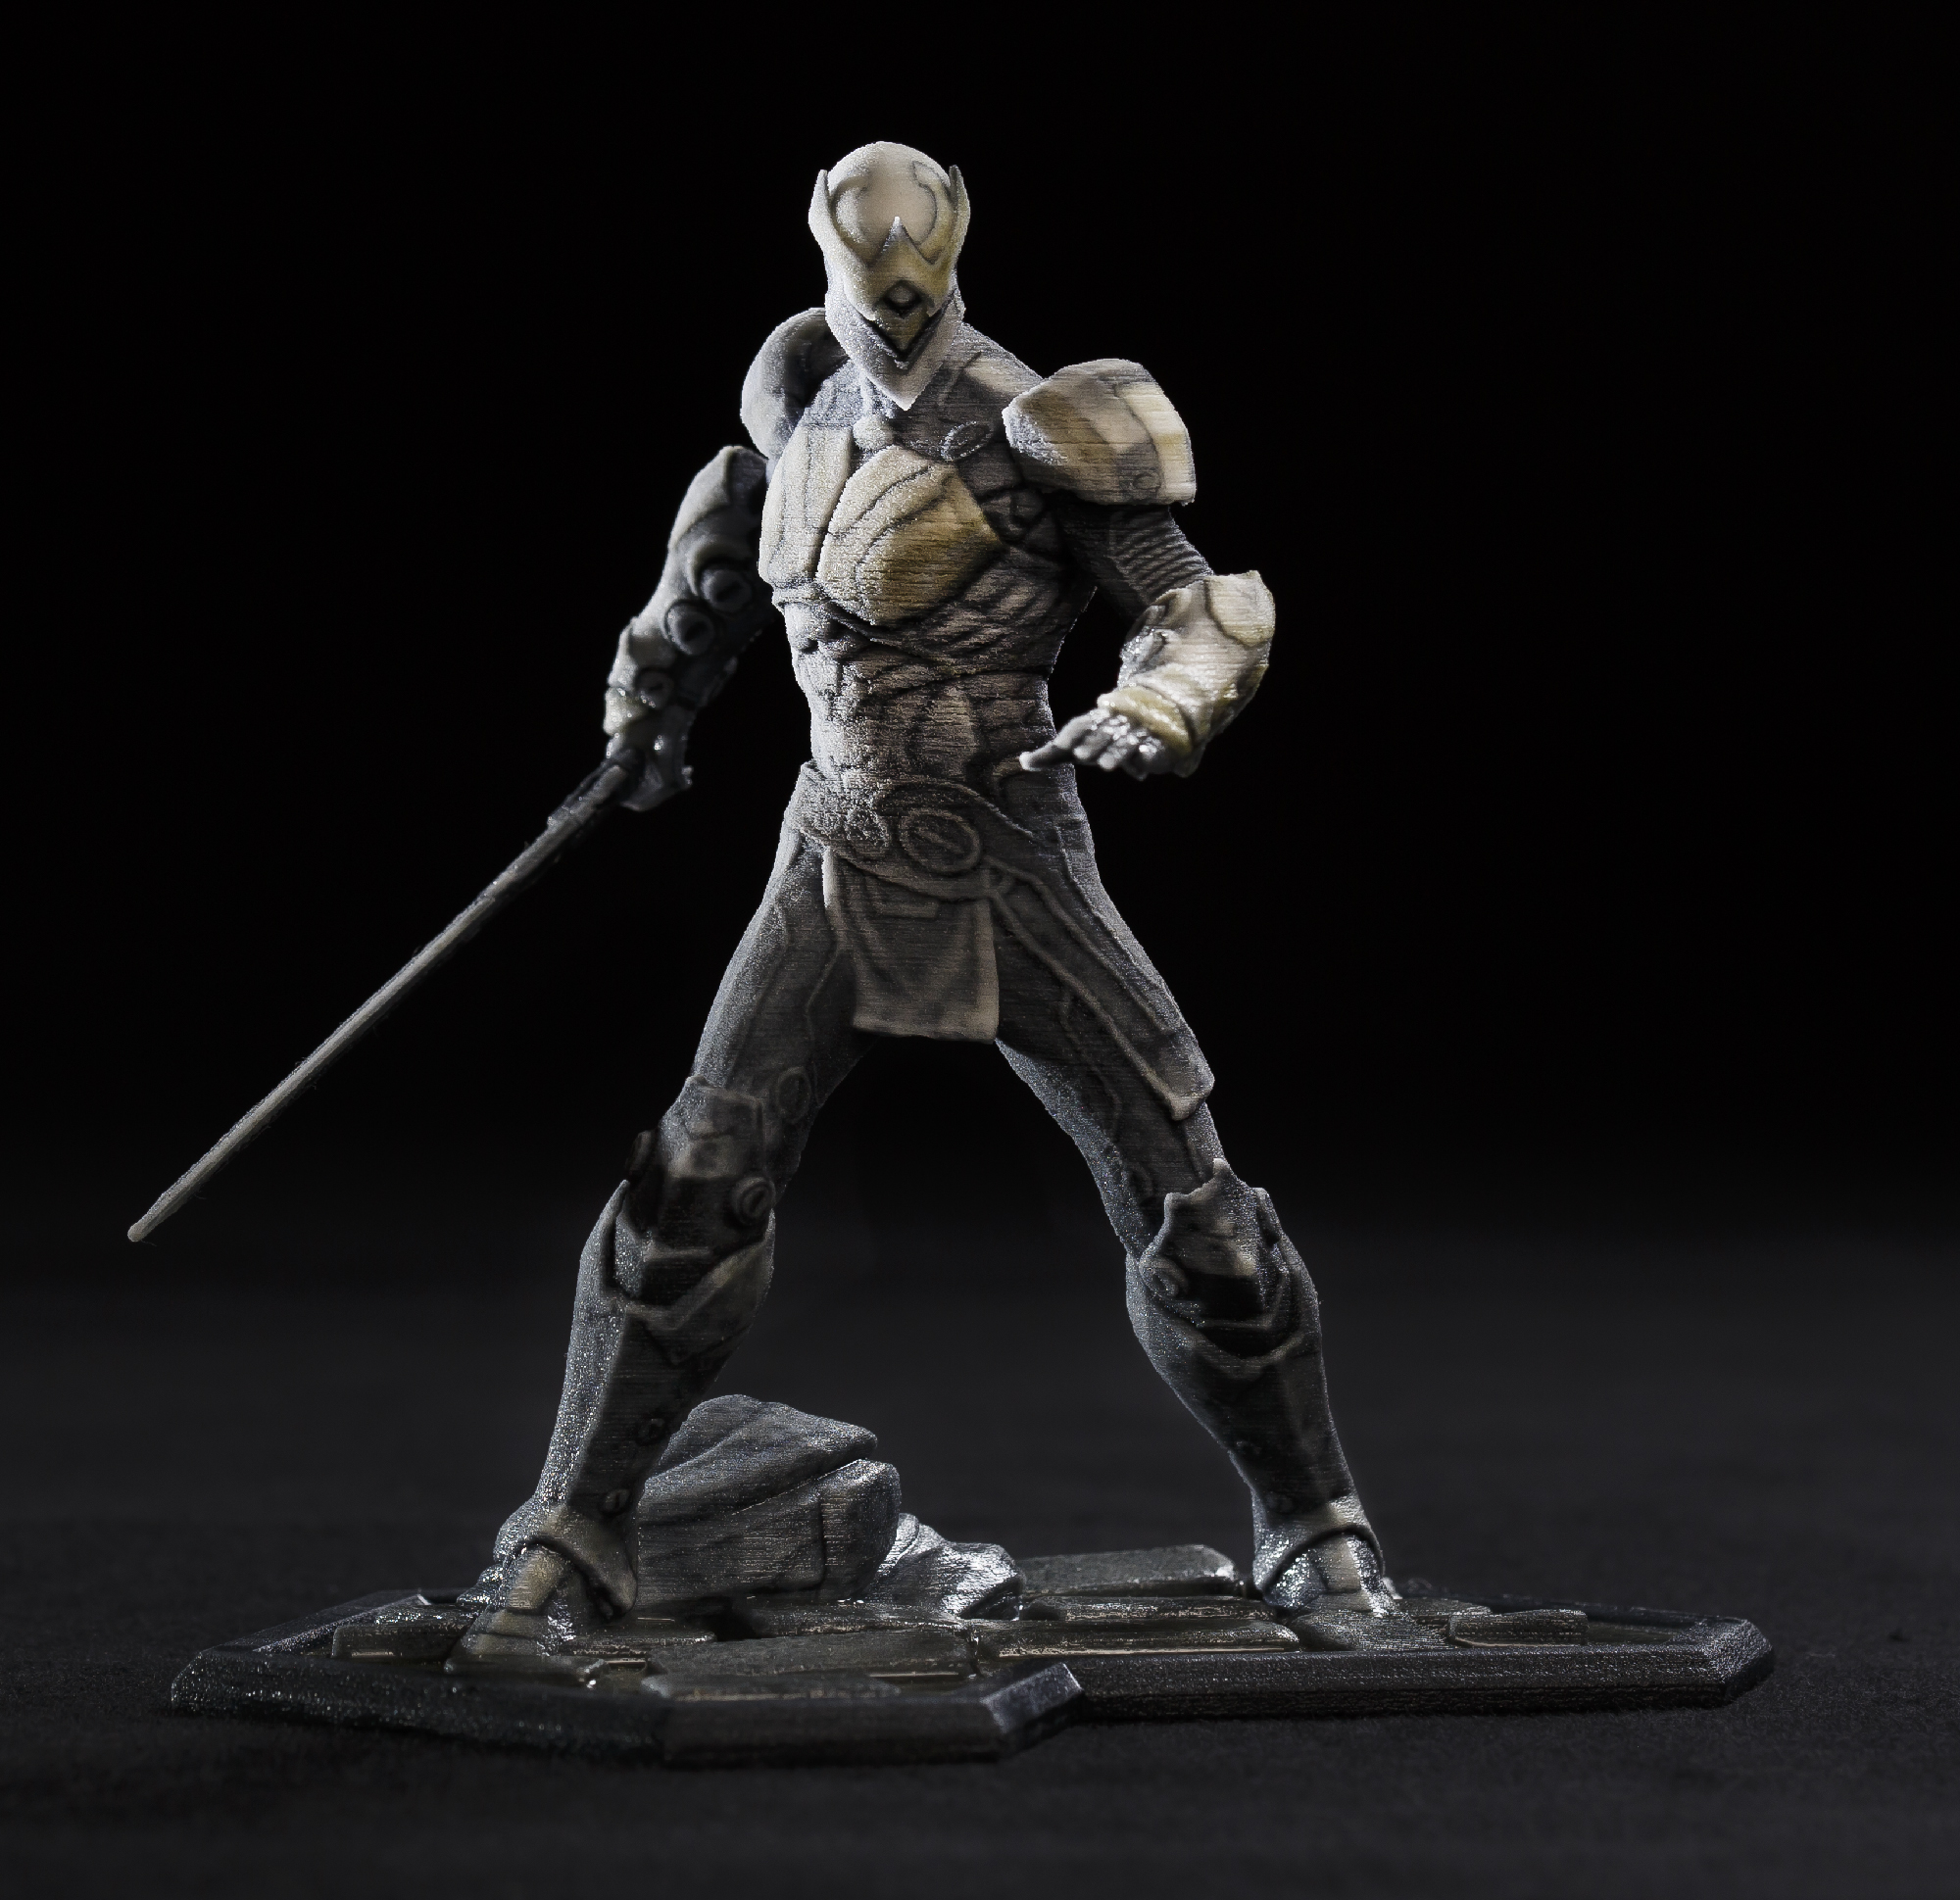 Gaiming Chair Chair Announces New Series Of Infinity Blade Collectibles